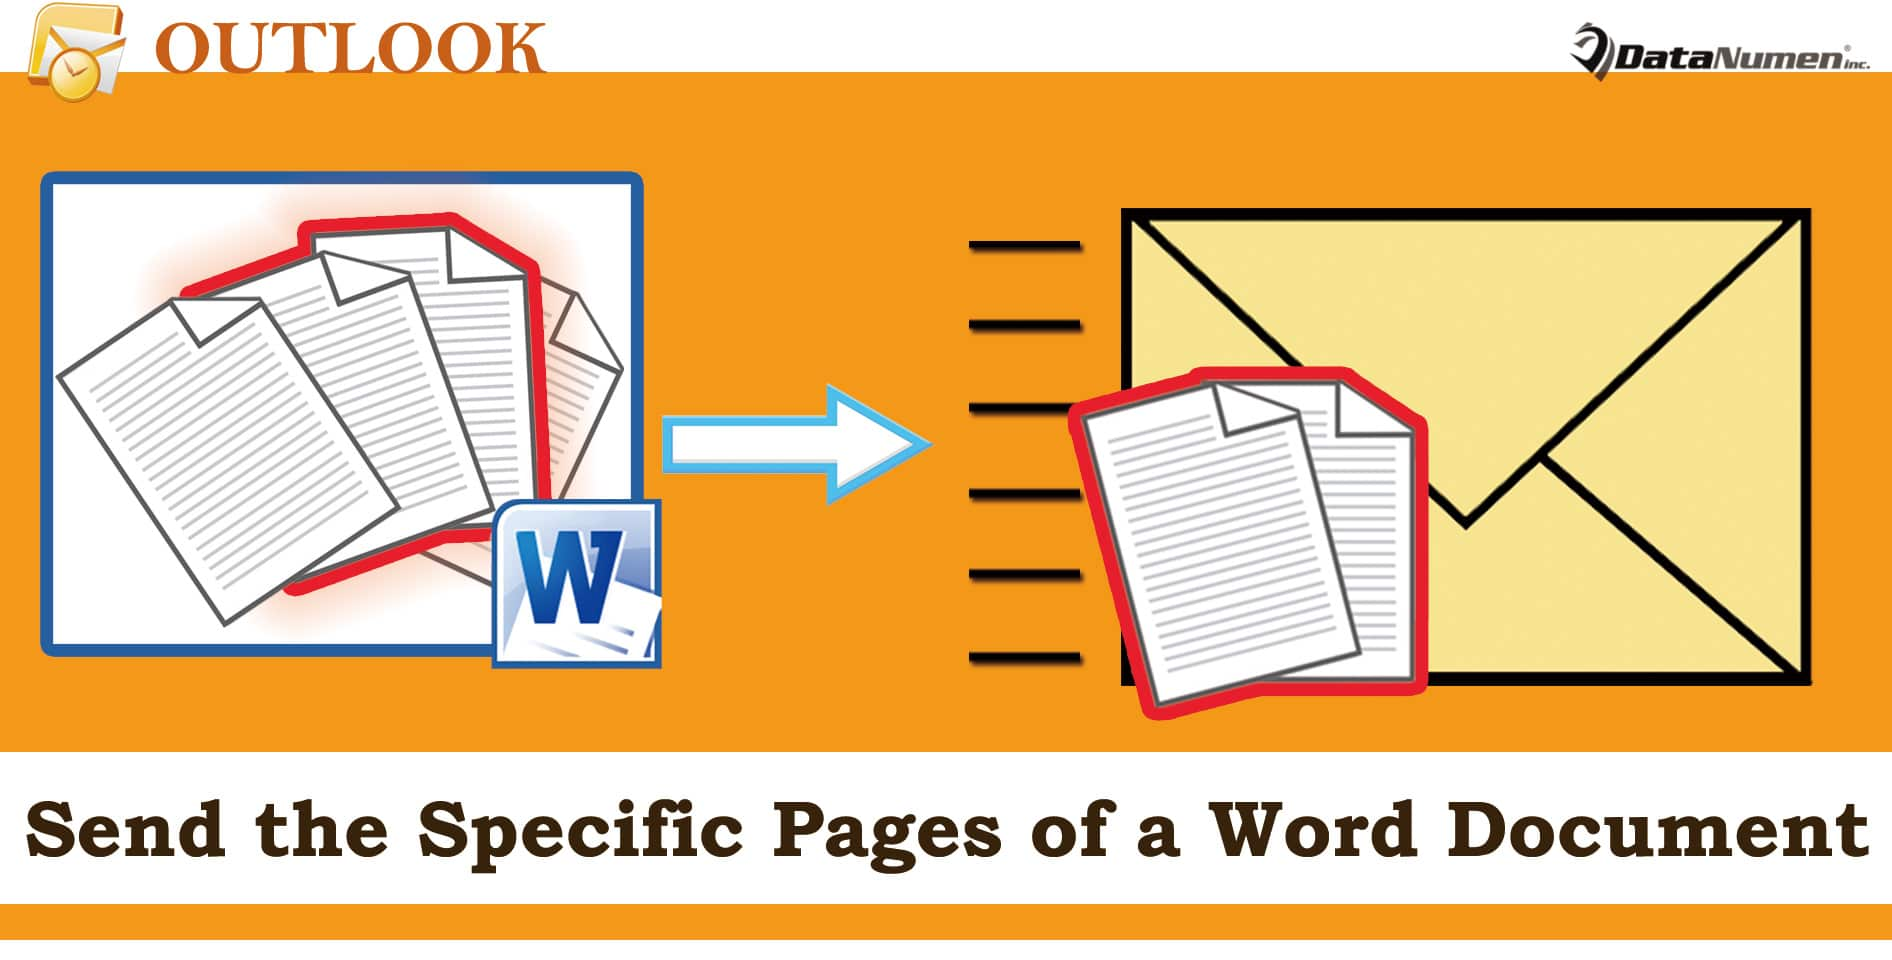 Send the Specific Pages of a Word Document as an Outlook Email